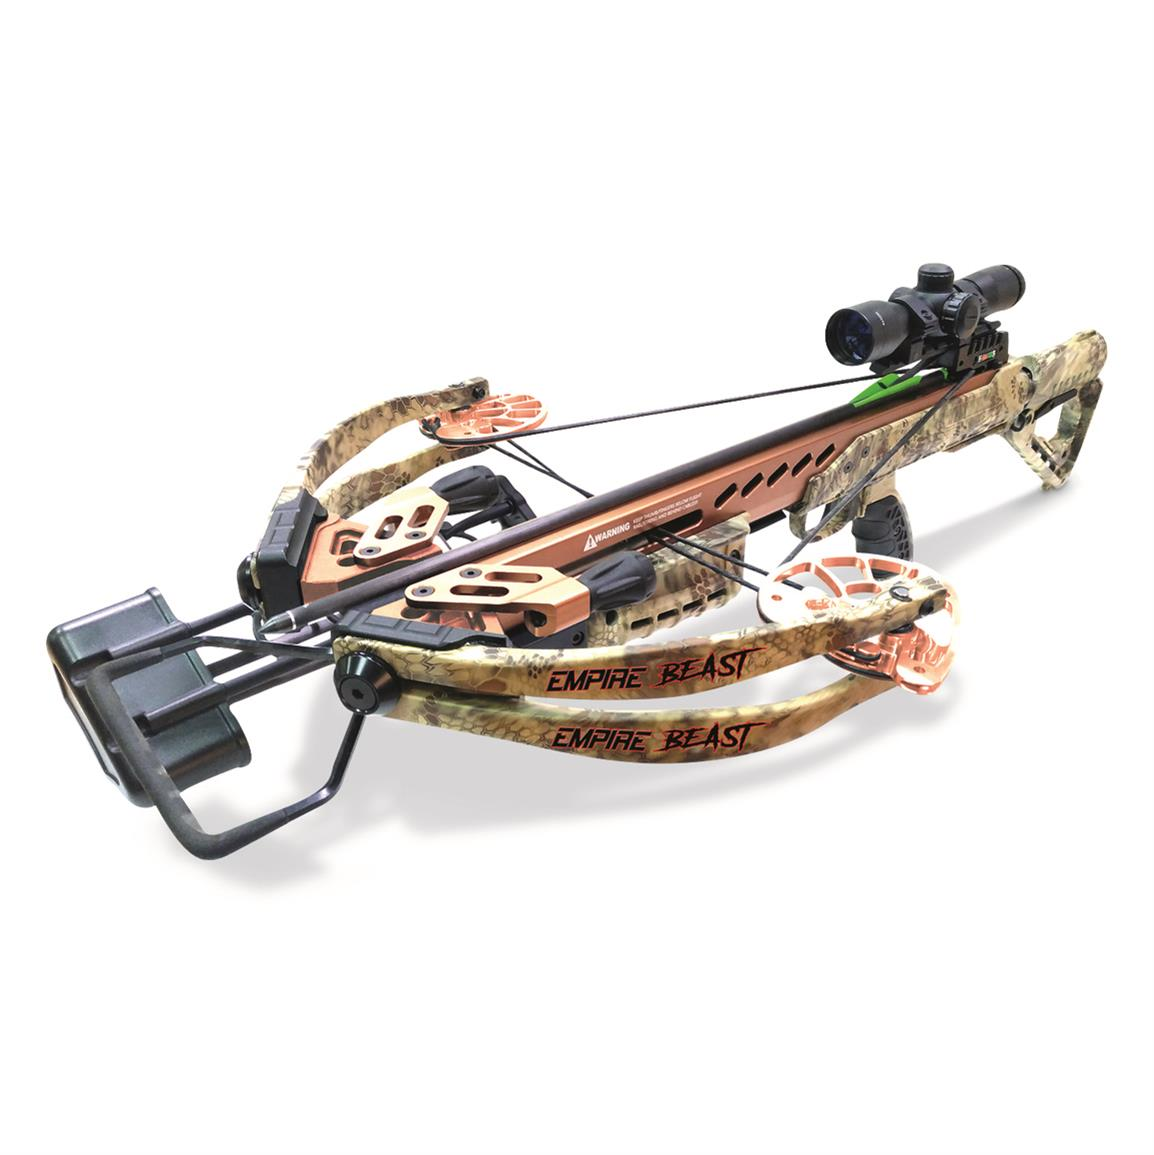 SA Sports Empire Beast 400 Compound Crossbow Package